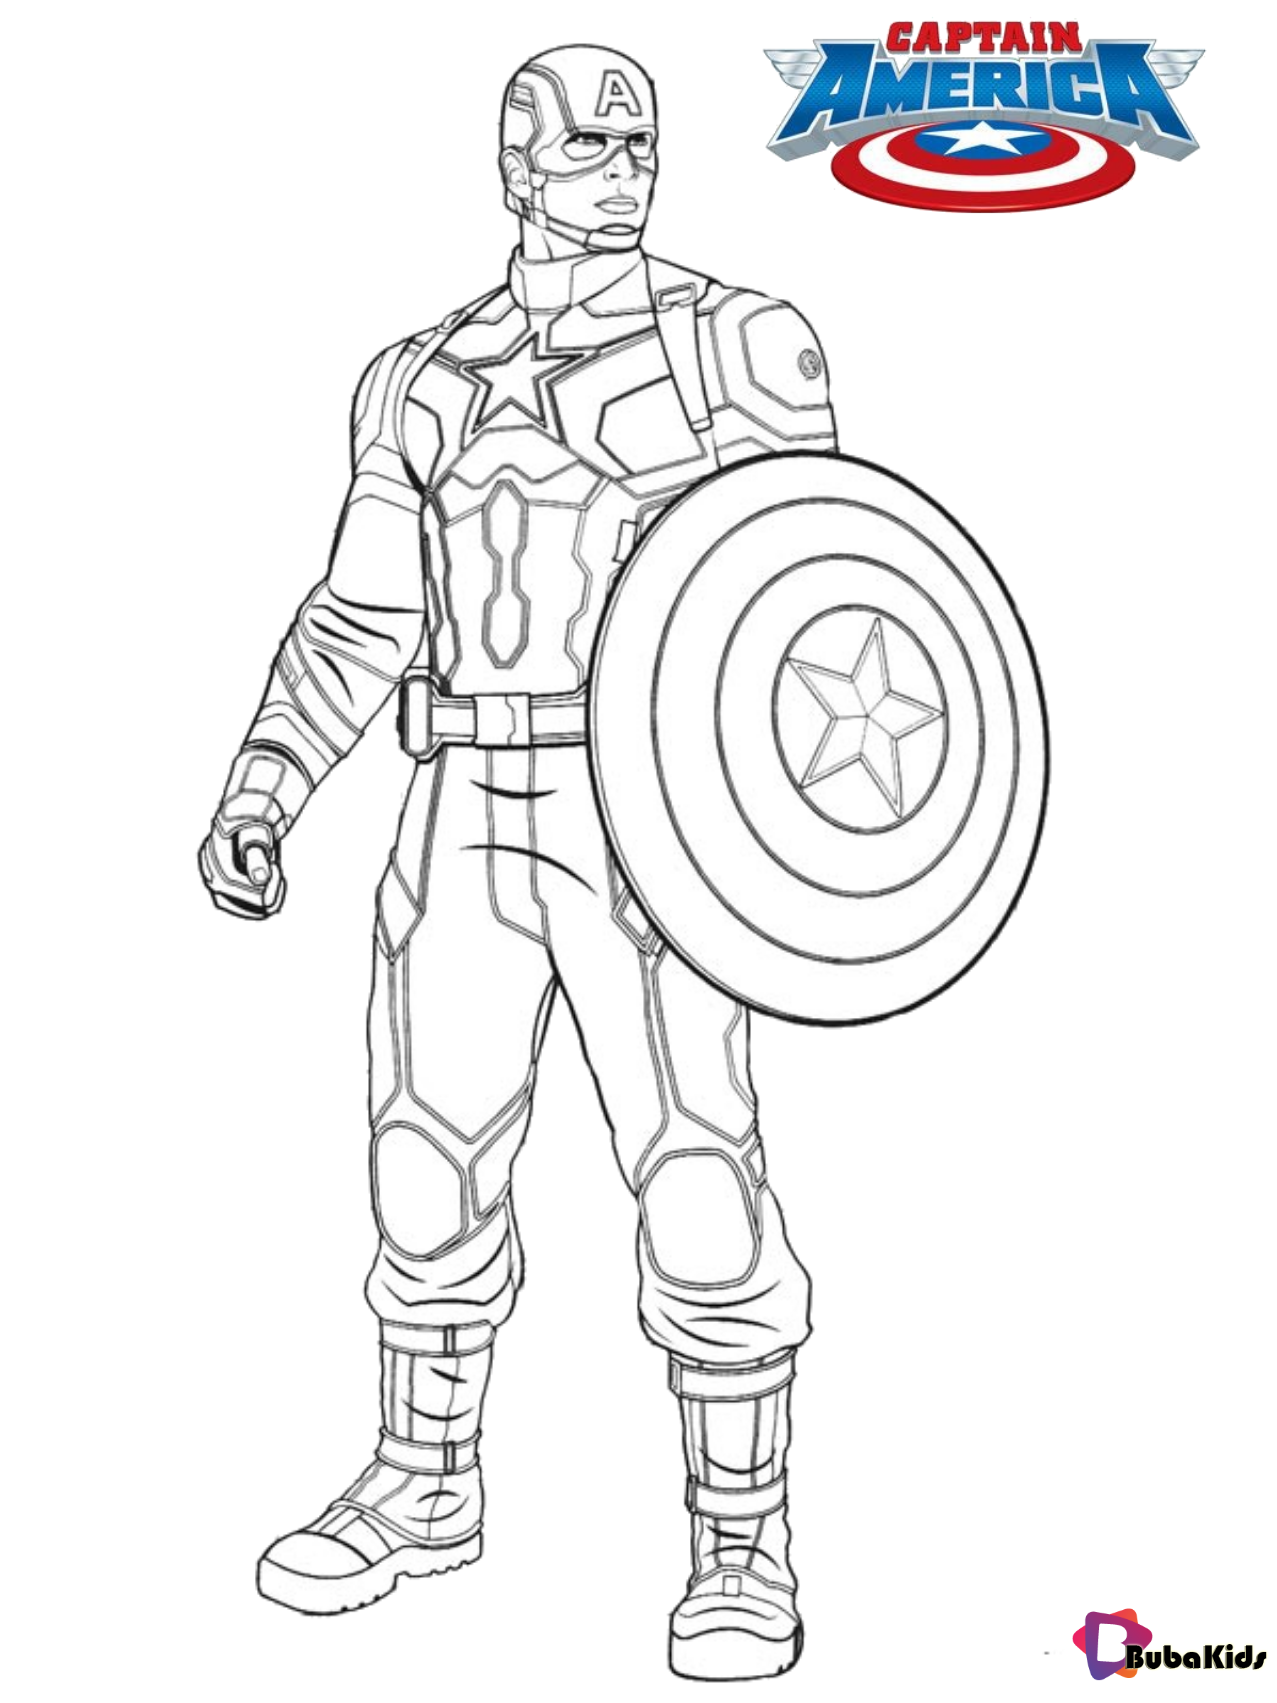 Captain America Coloring Page For Kids In